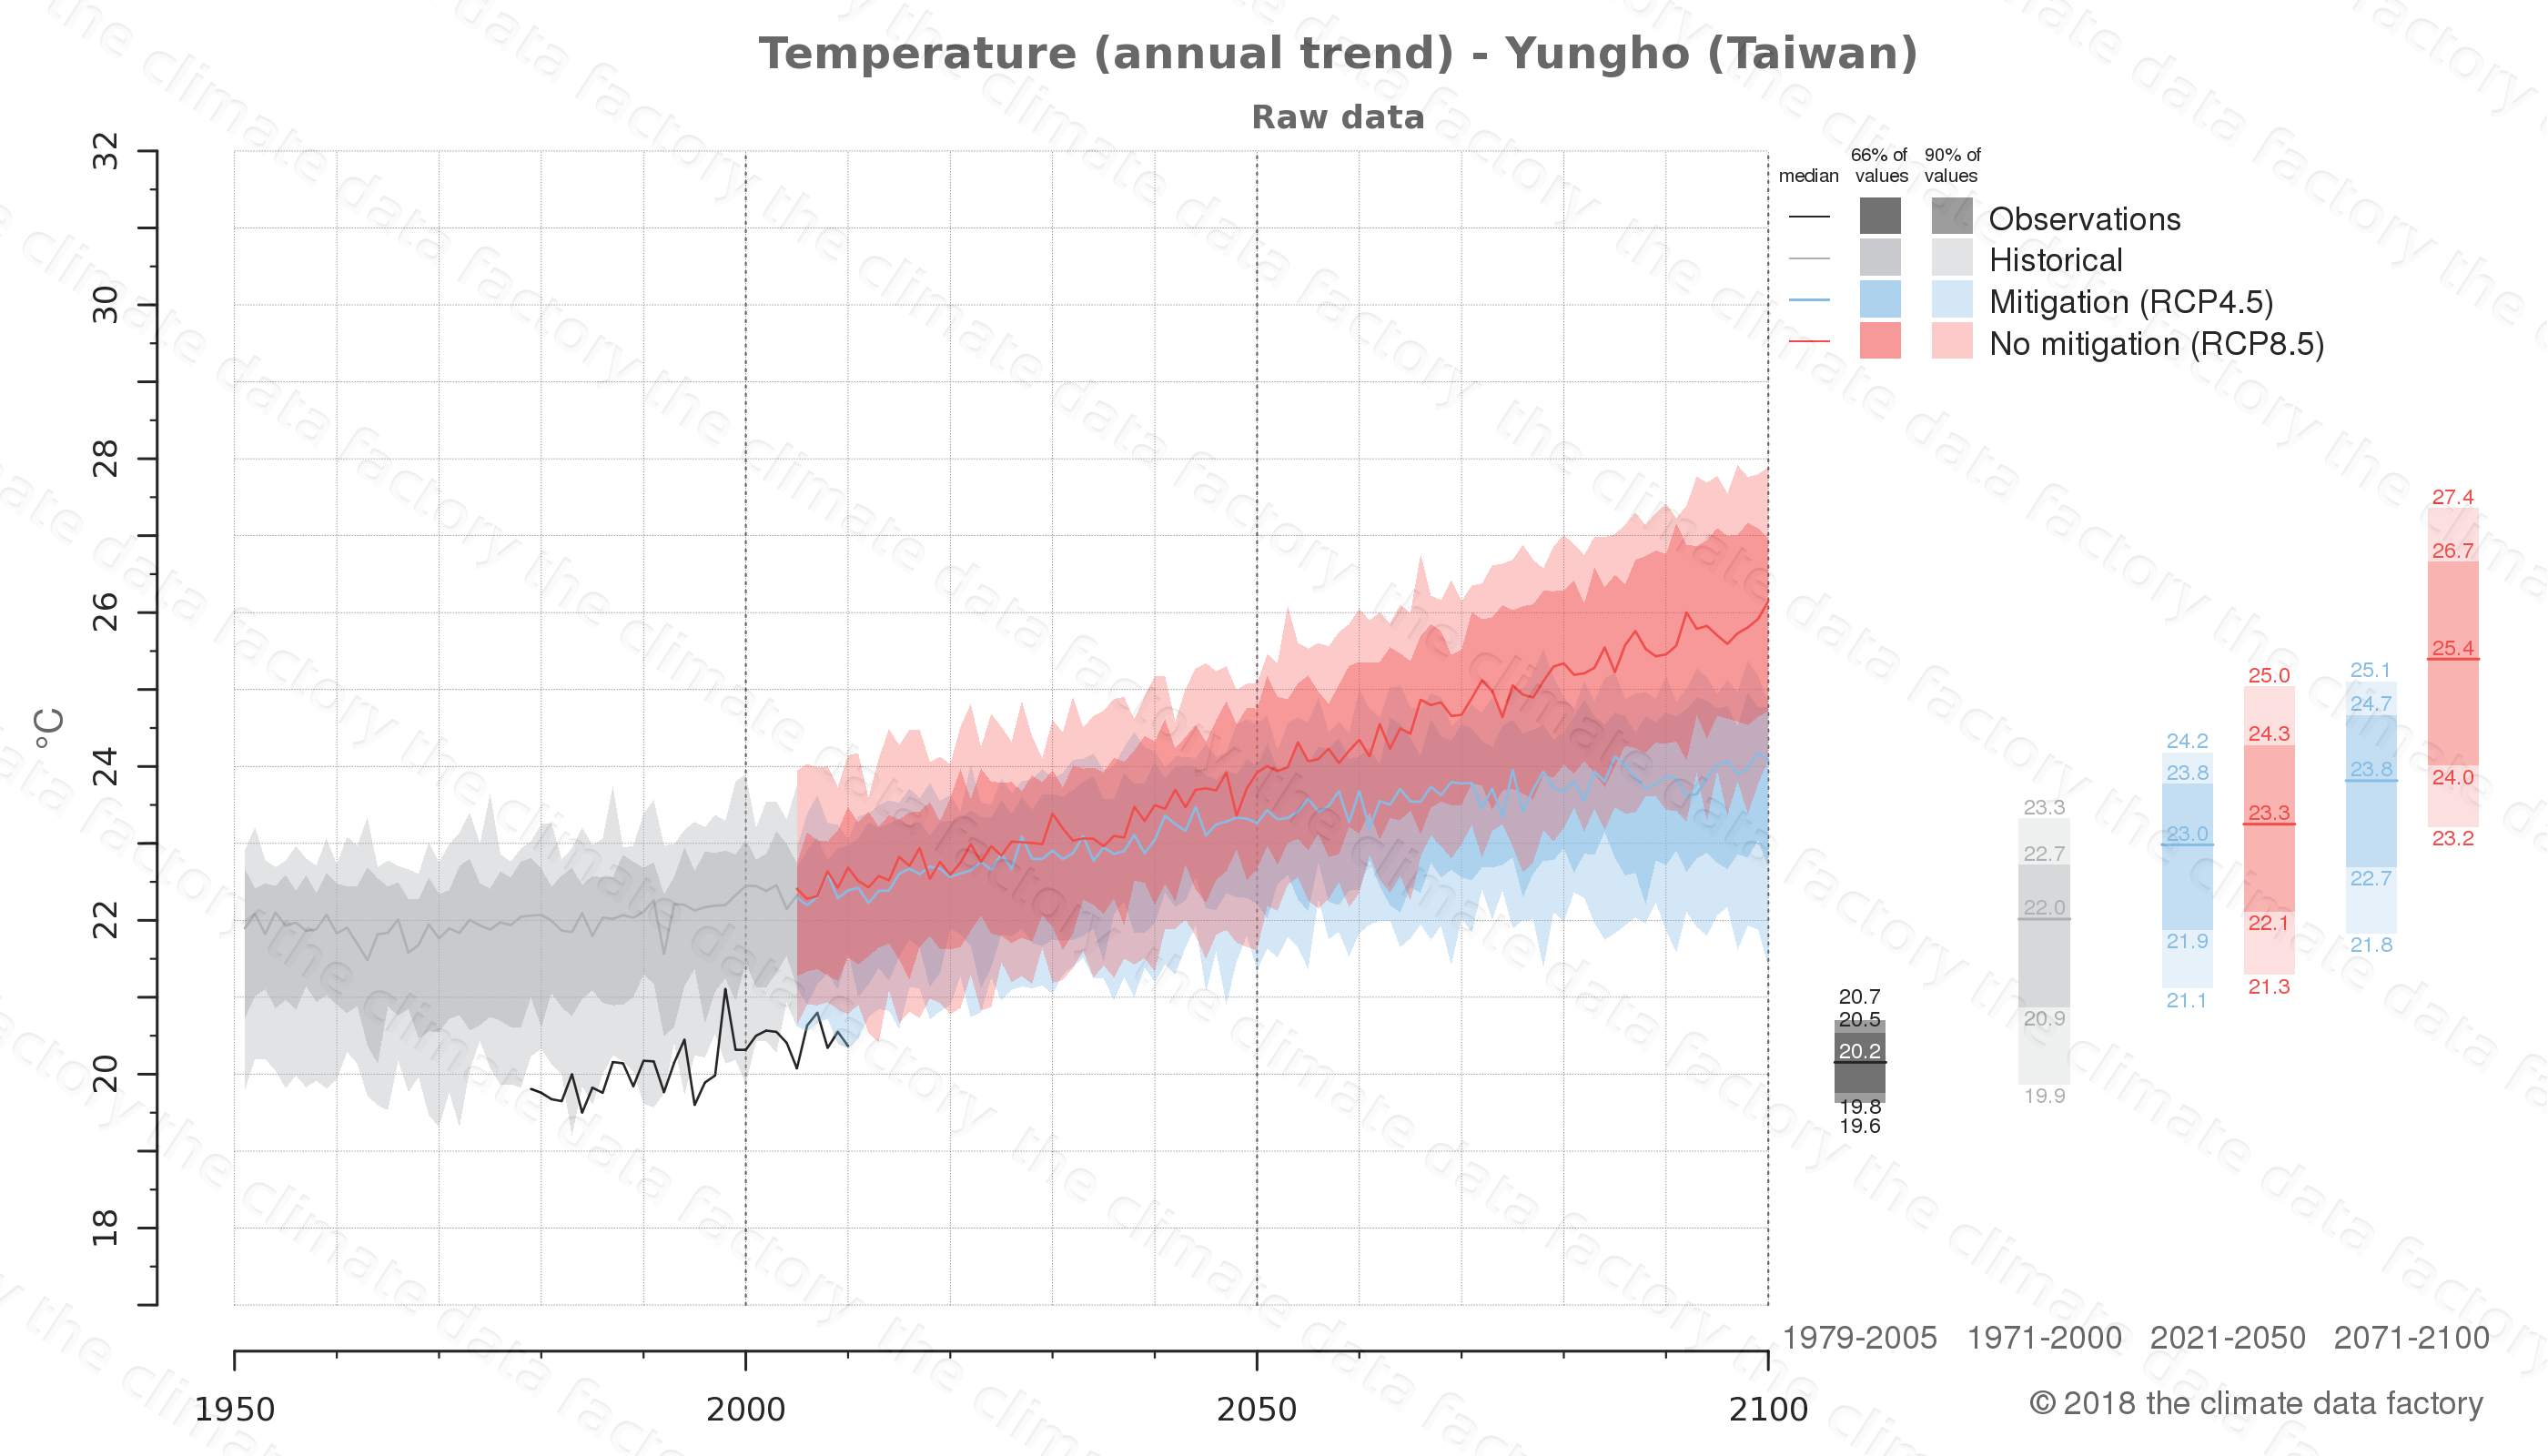 climate change data policy adaptation climate graph city data temperature yungho taiwan